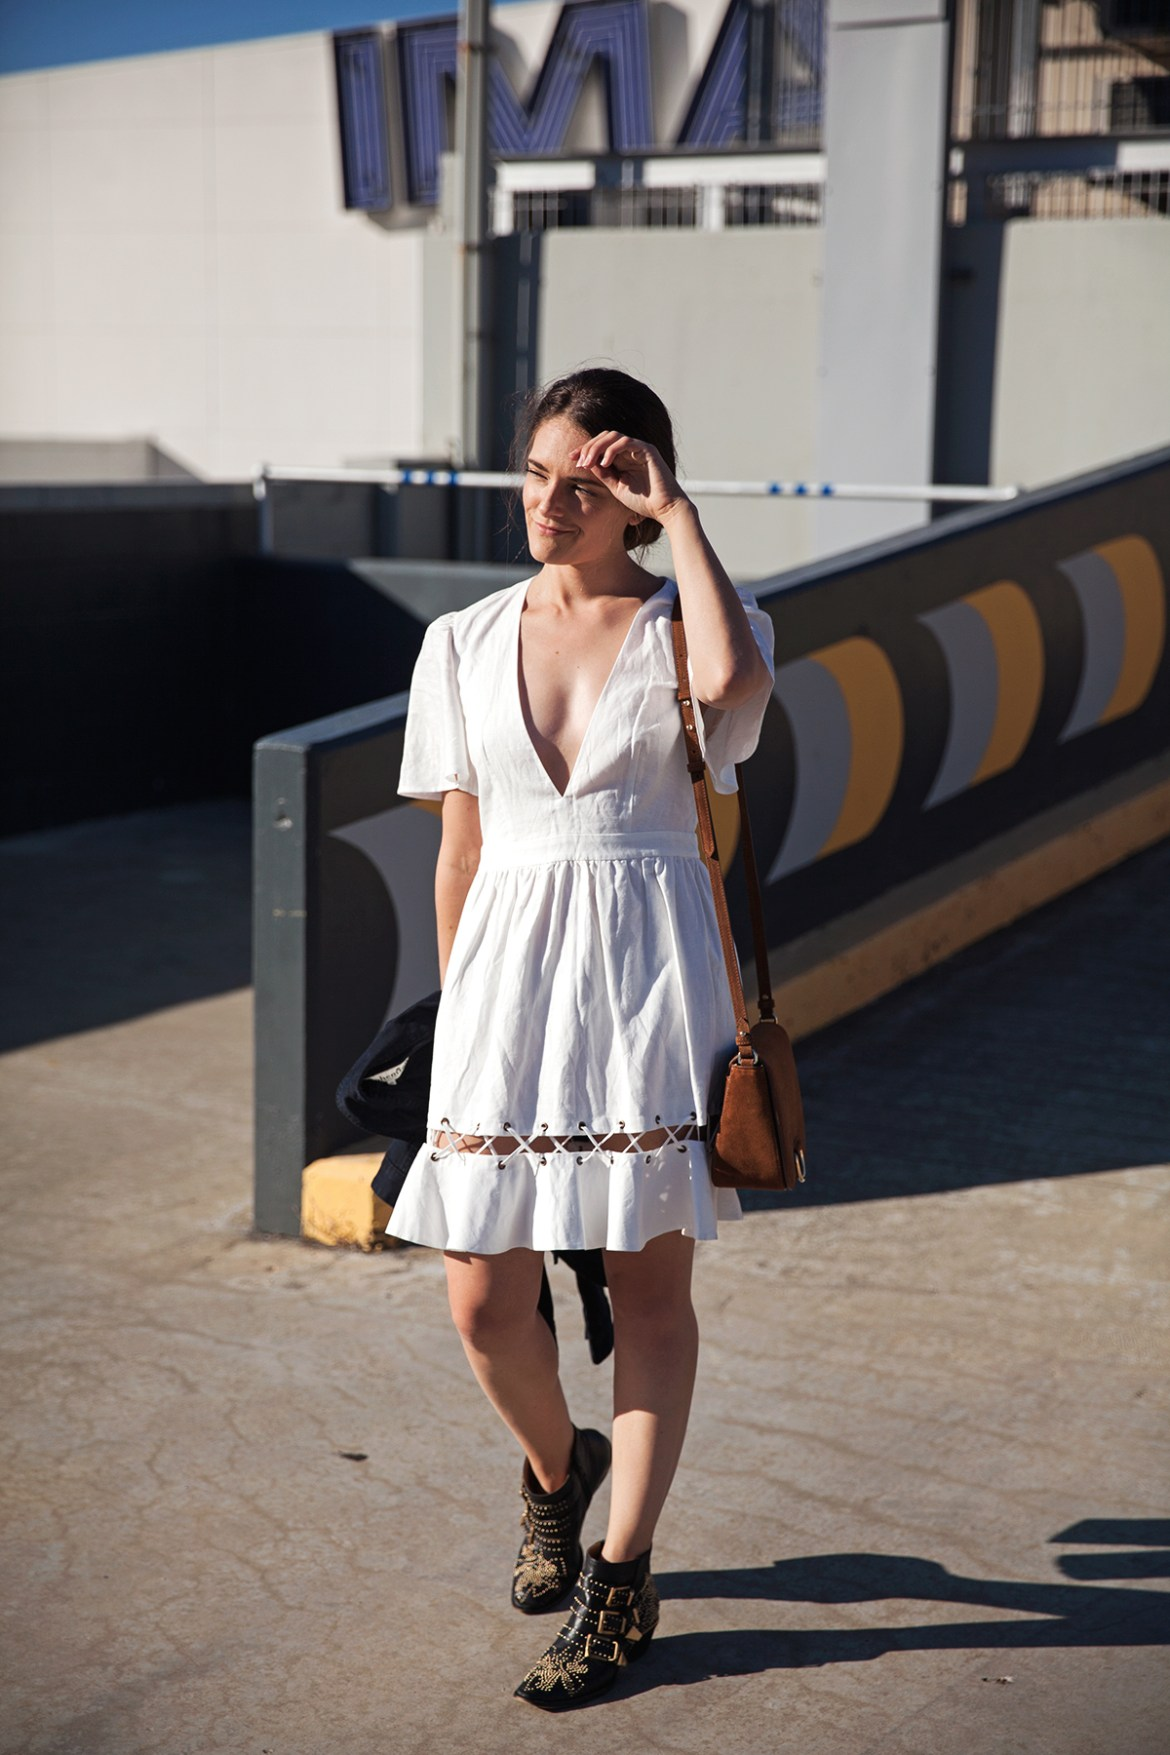 The white summer dress how to style, Inspiring Wit, Australian fashion blogger in Isla Positano dress